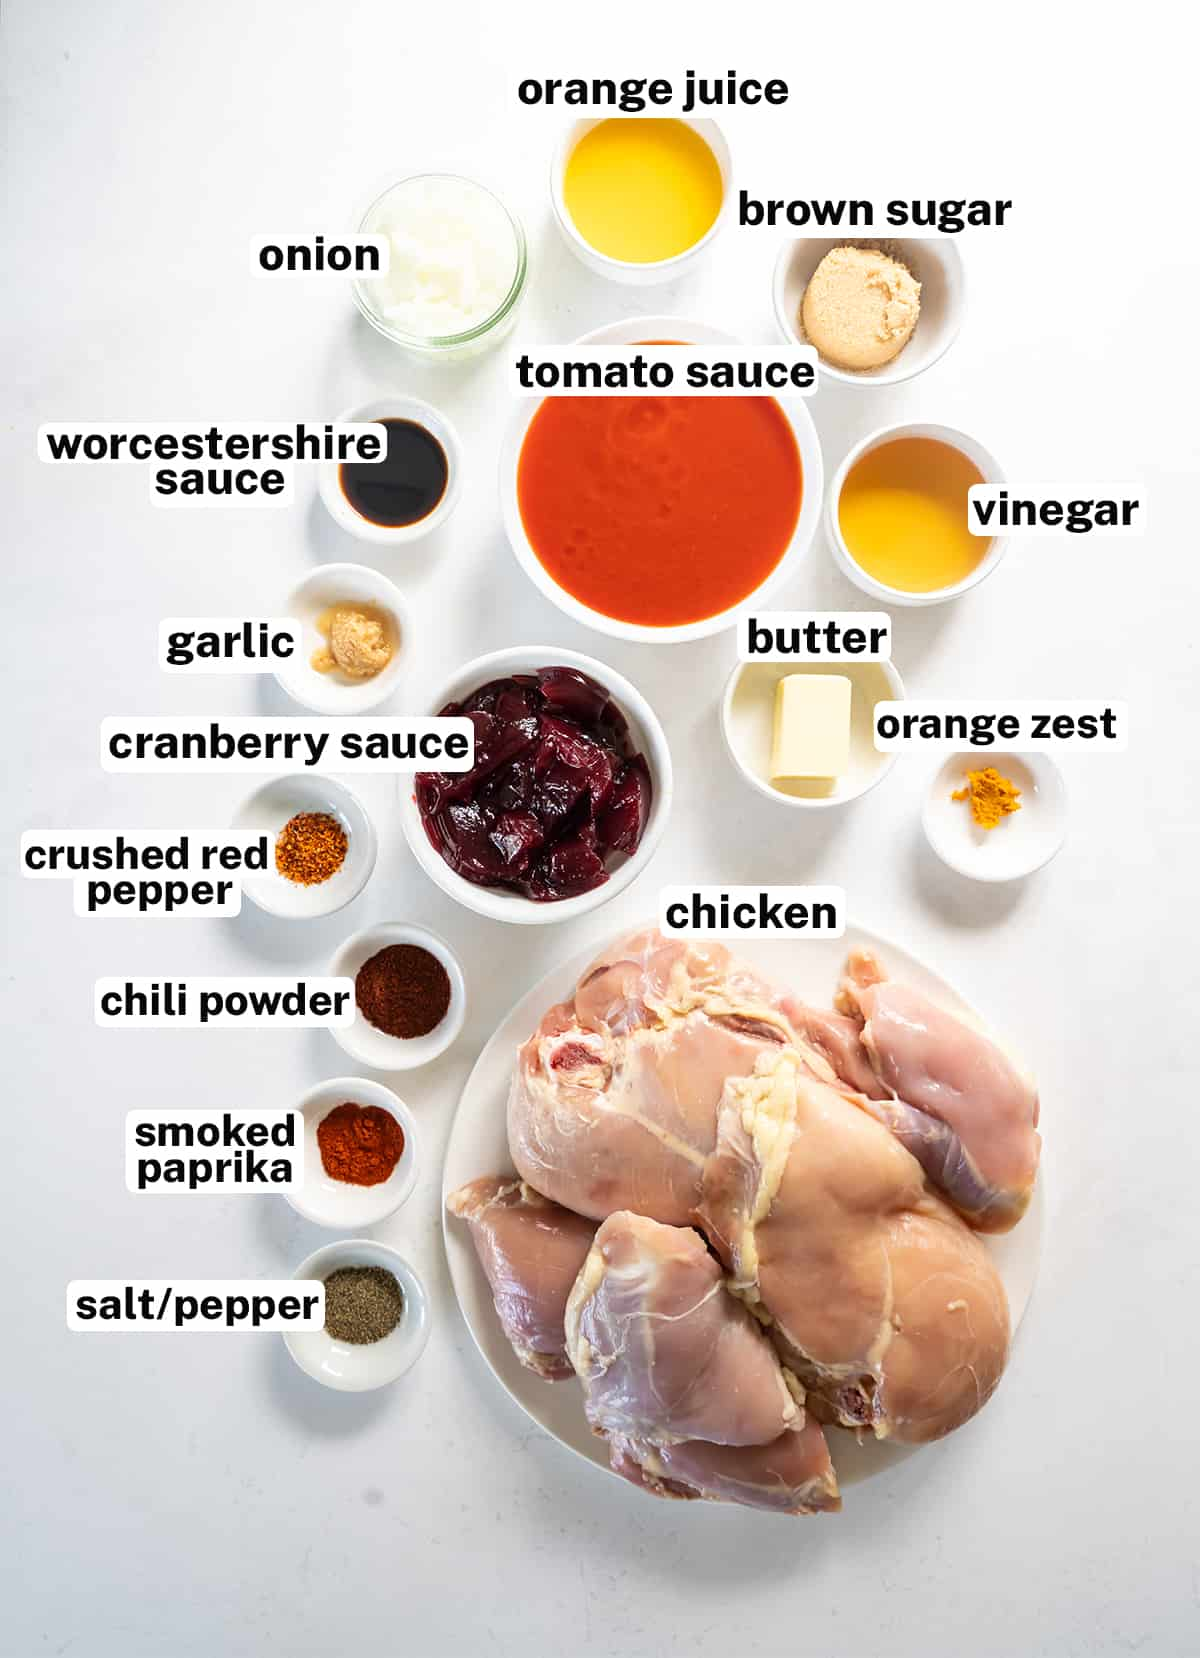 The ingredients to make Oven BBQ Chicken with overlay text.